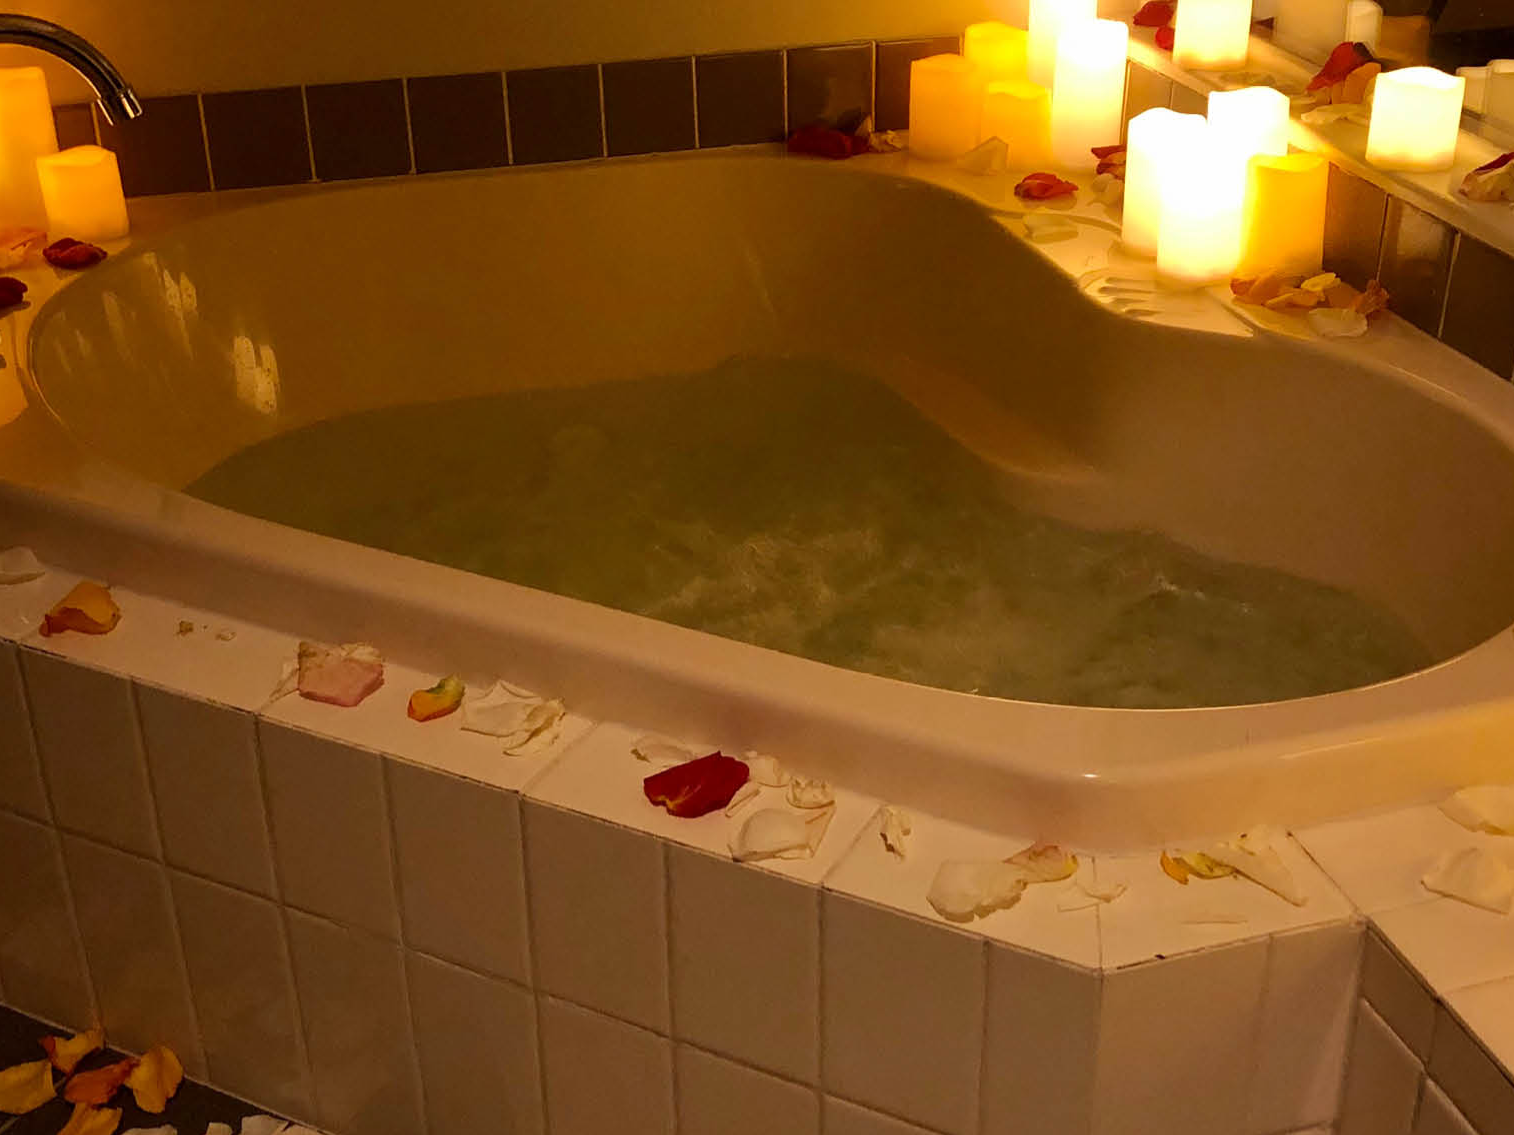 Bathtub arranged with candles and flower at Royal on the Park